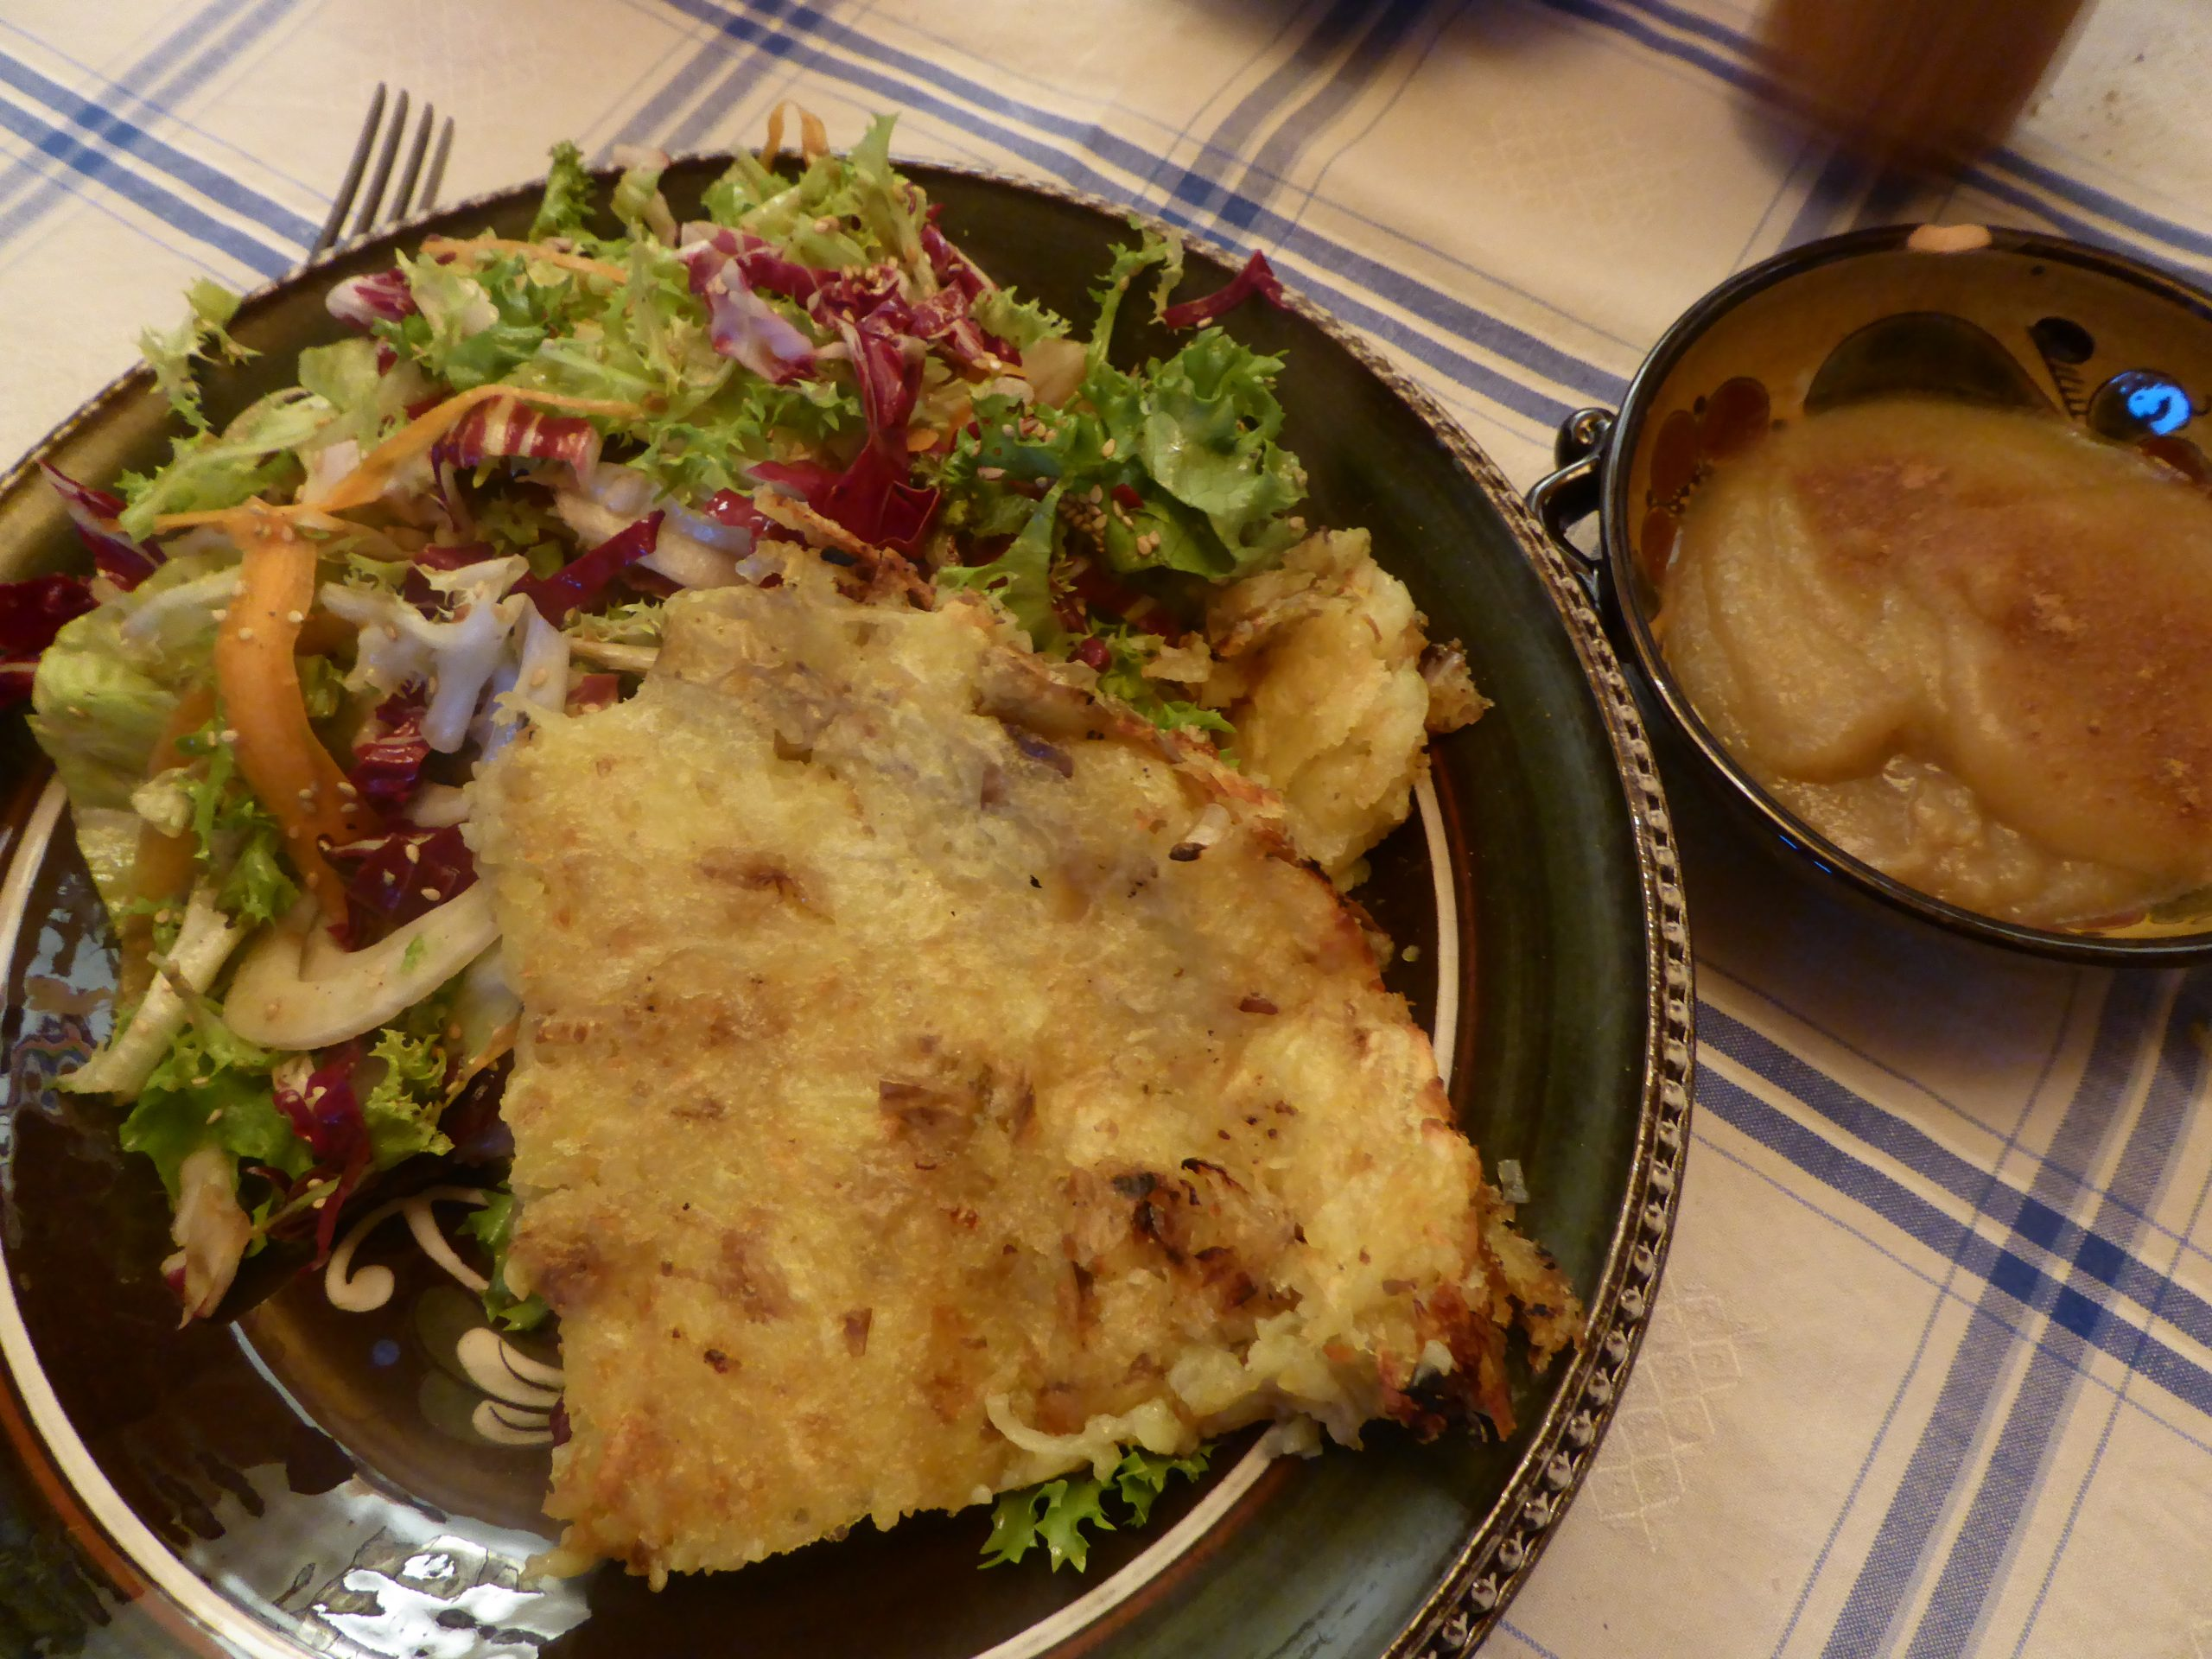 Rosti served with a nice winter salad